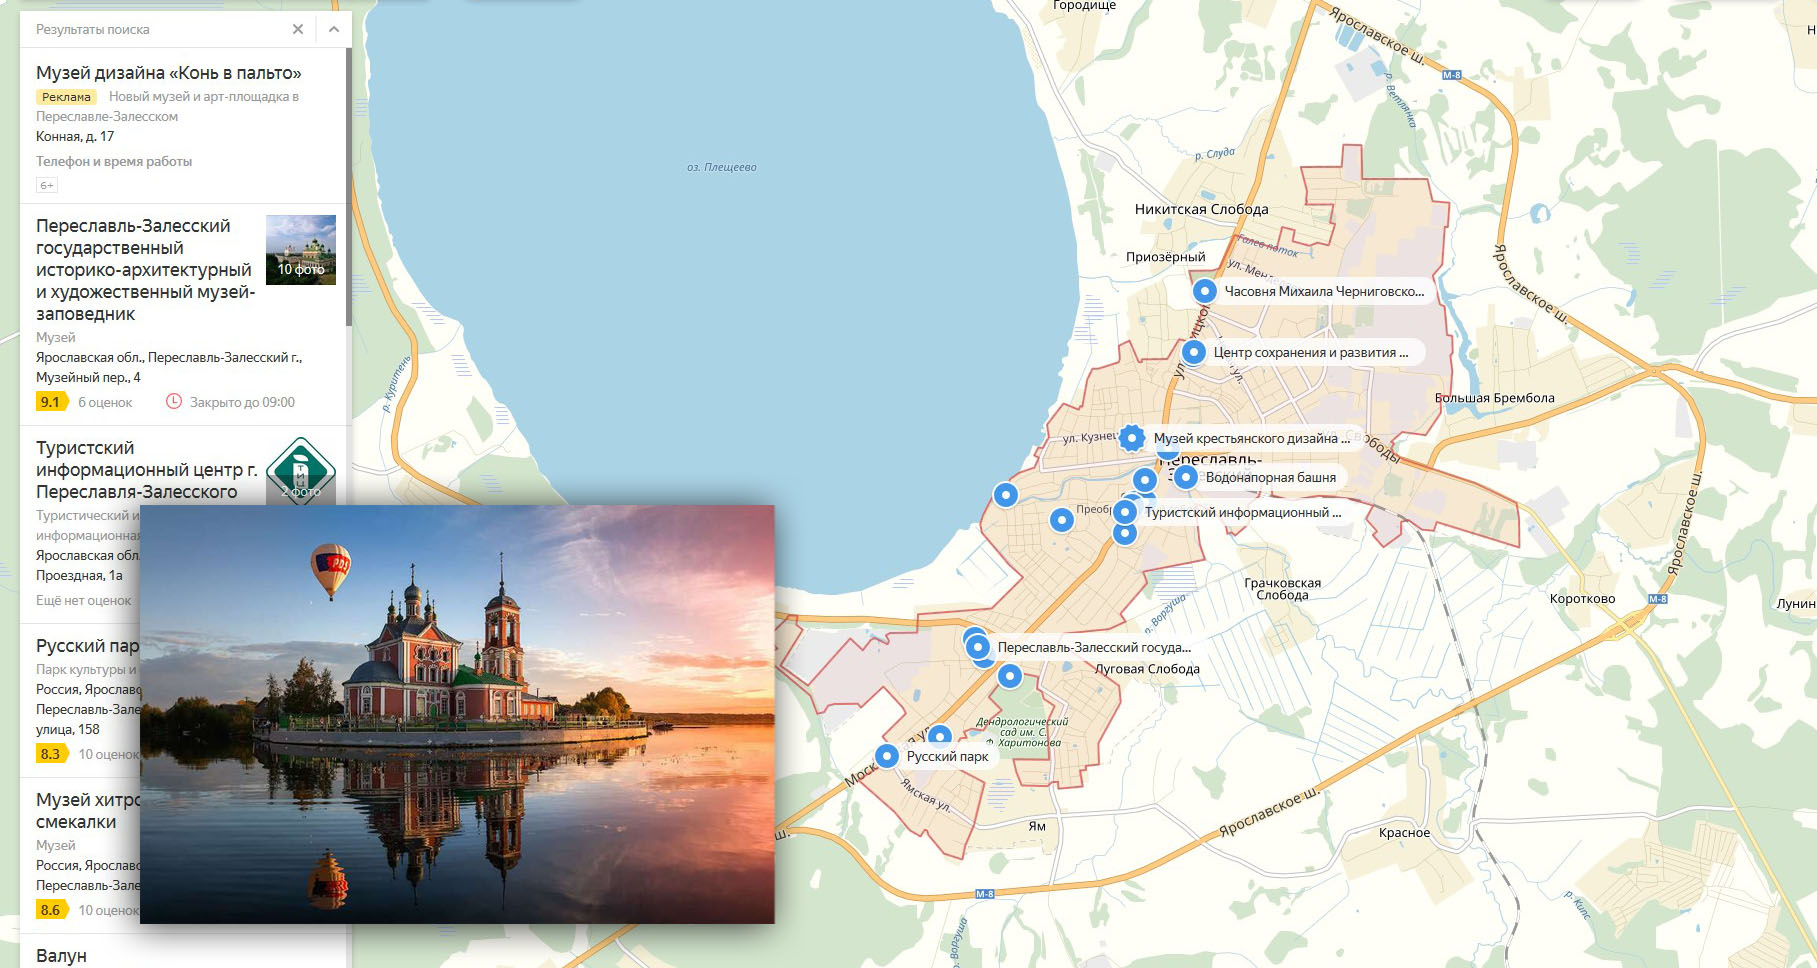 Vyshny Volochek: attractions. Rest, excursions, reviews 58